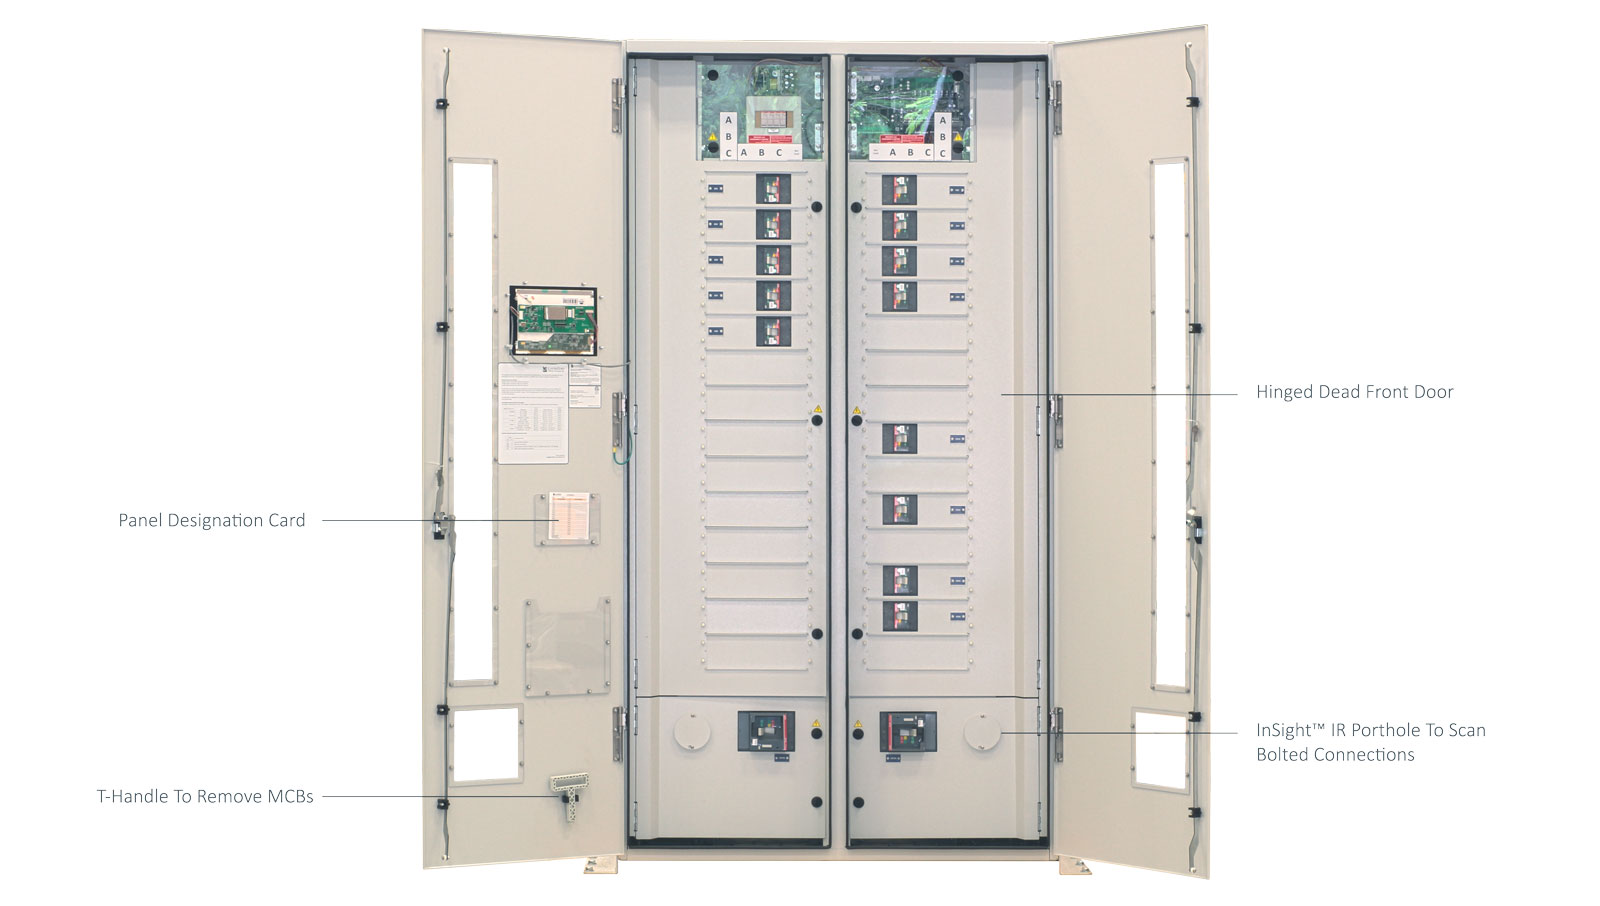 ePanel-HD2 High Density Power Panel with the Outer Door Open